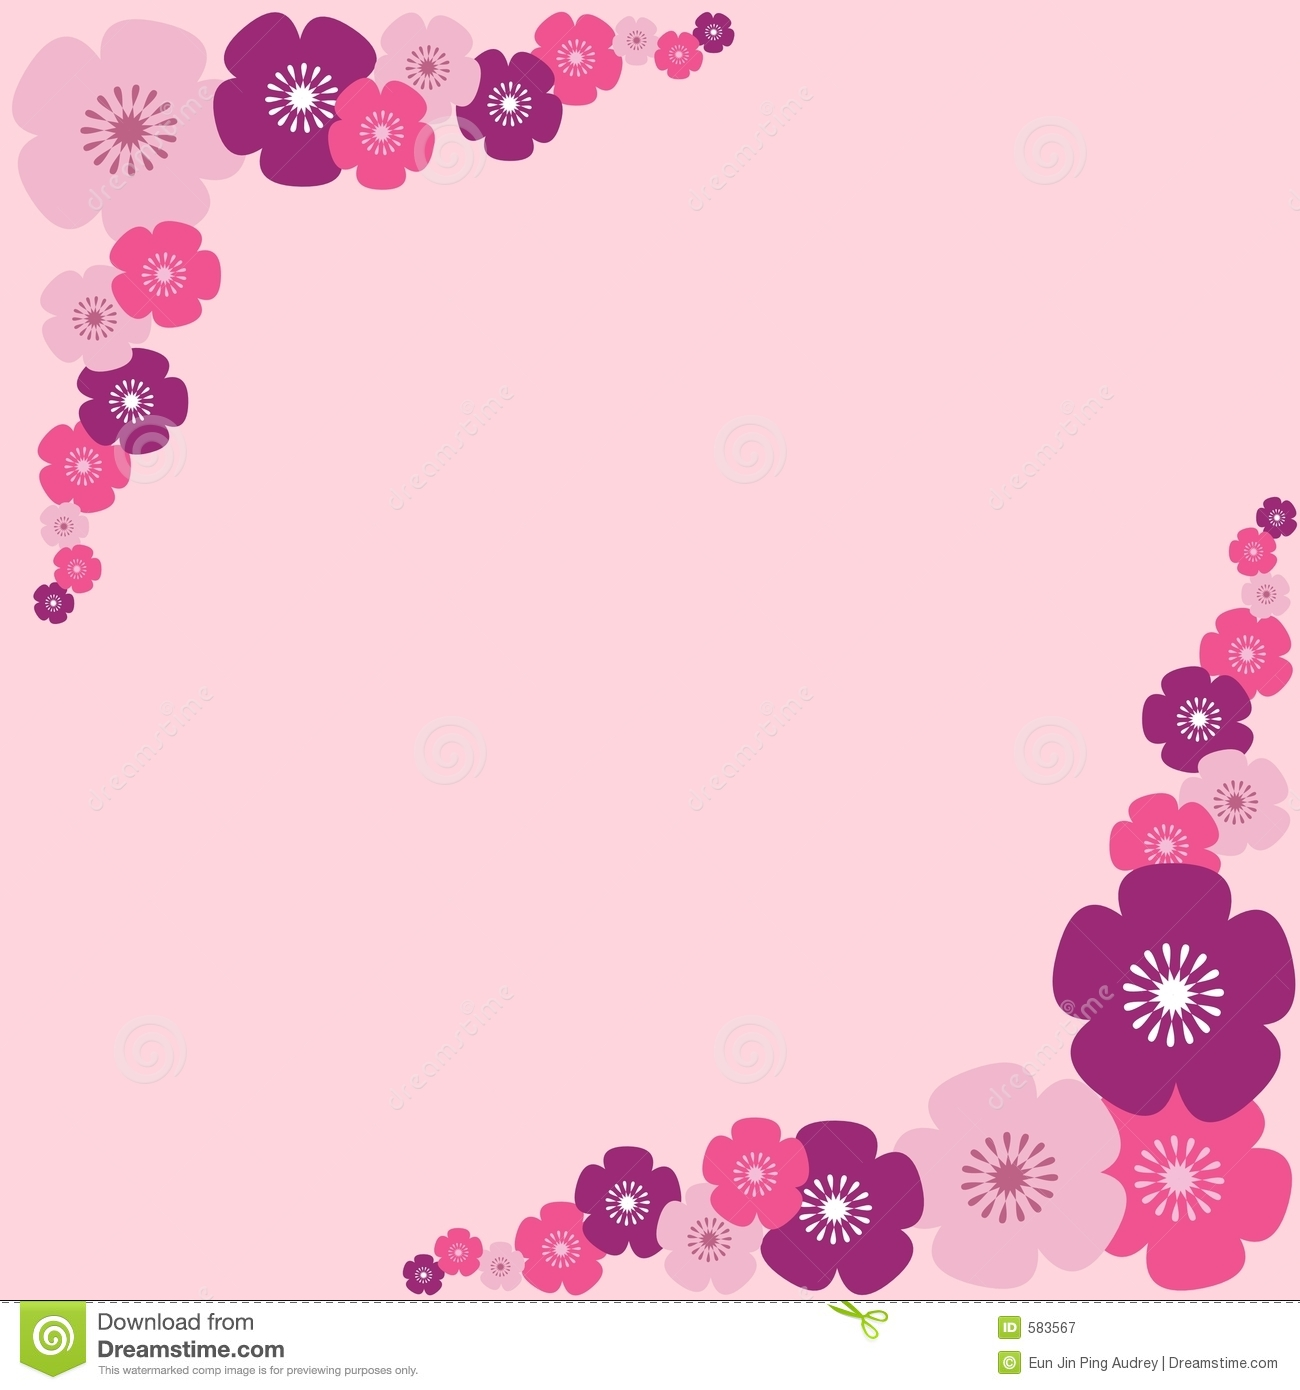 Pink Flowers Border Royalty Free Stock Photography - Image: 583567